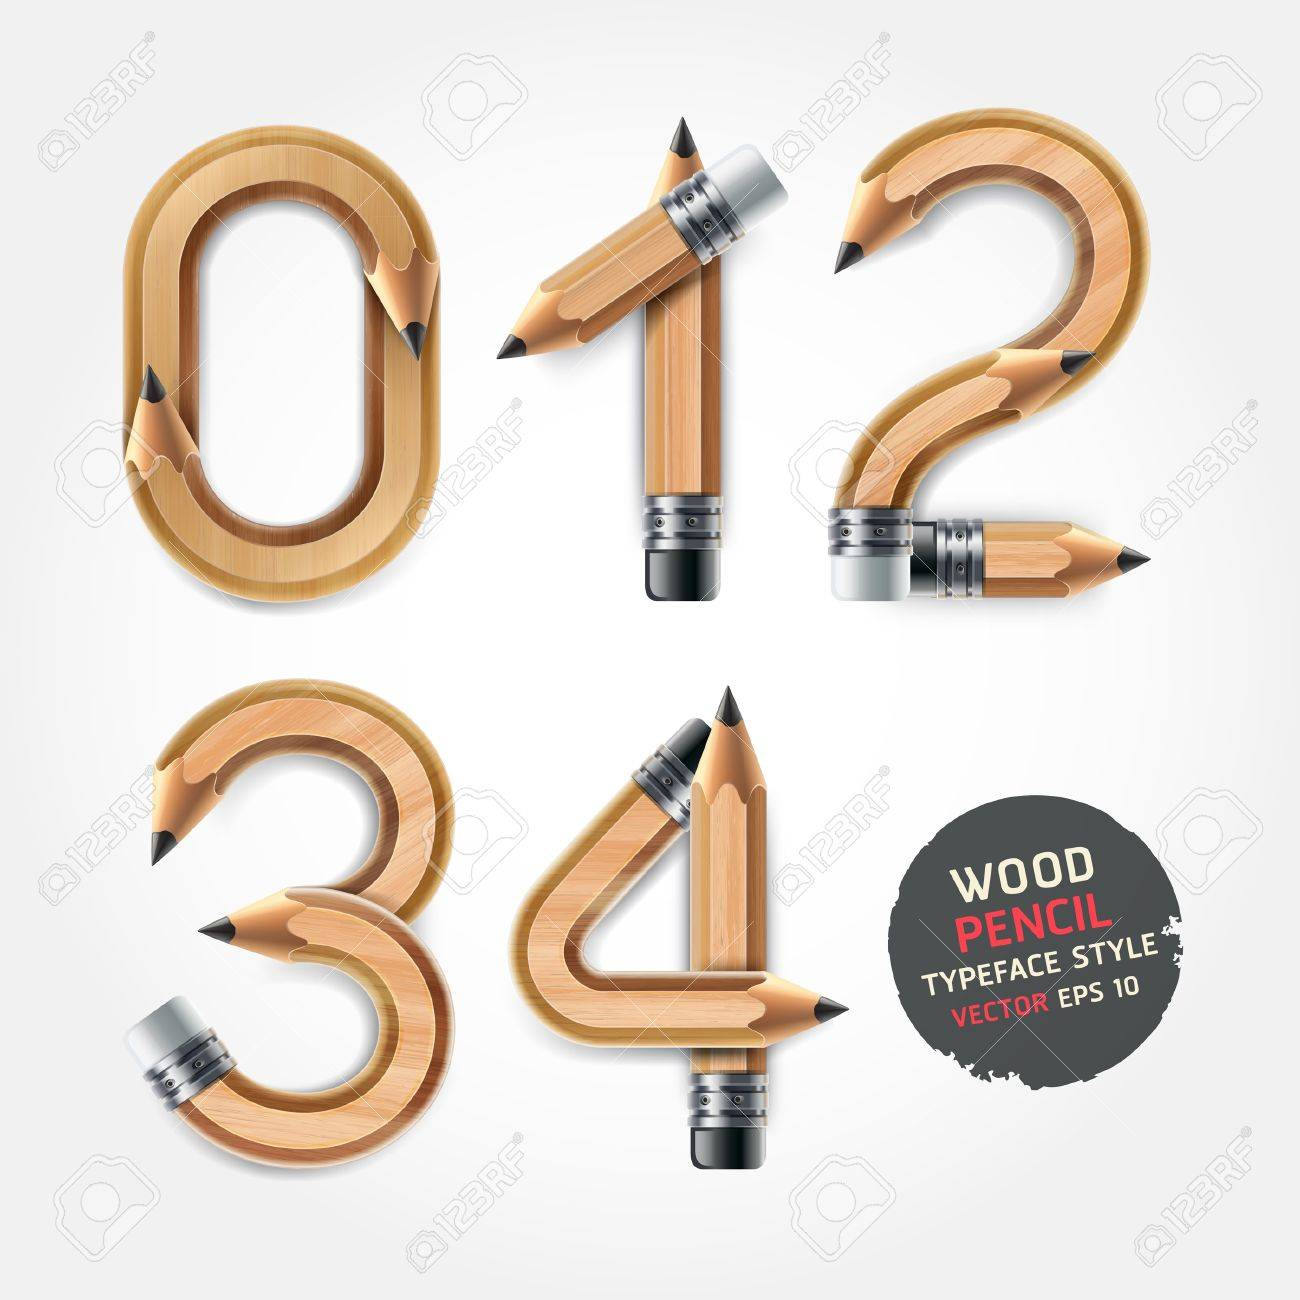 Wood pencil numbers alphabet style. Vector illustration. Stock Vector - 21601575